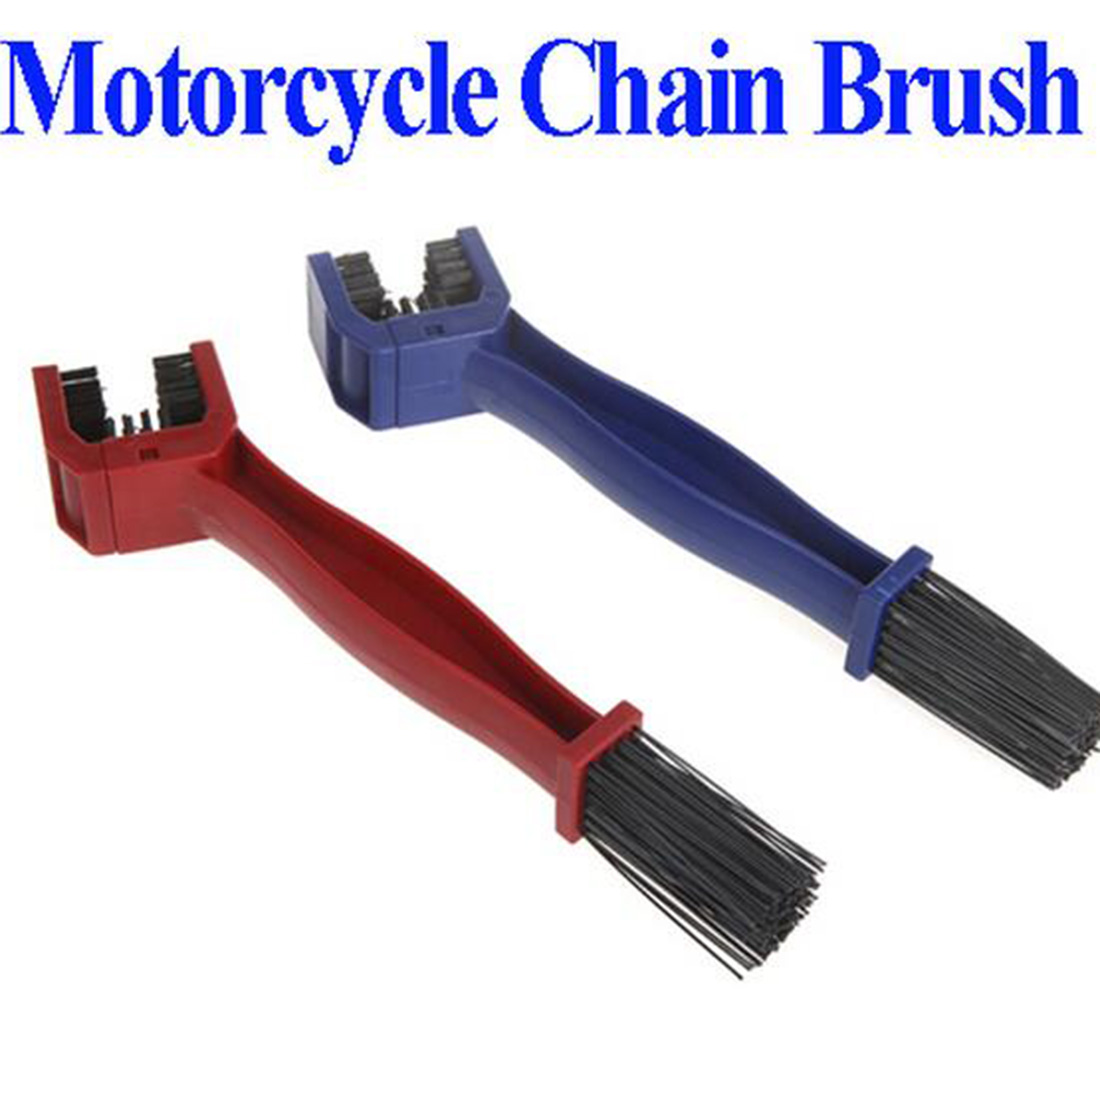 BU-Bauty Cycling Motorcycle Chain Clean Brush Gear Grunge Brush Cleaner Outdoor Cleaner Scrubber Tool Random Color